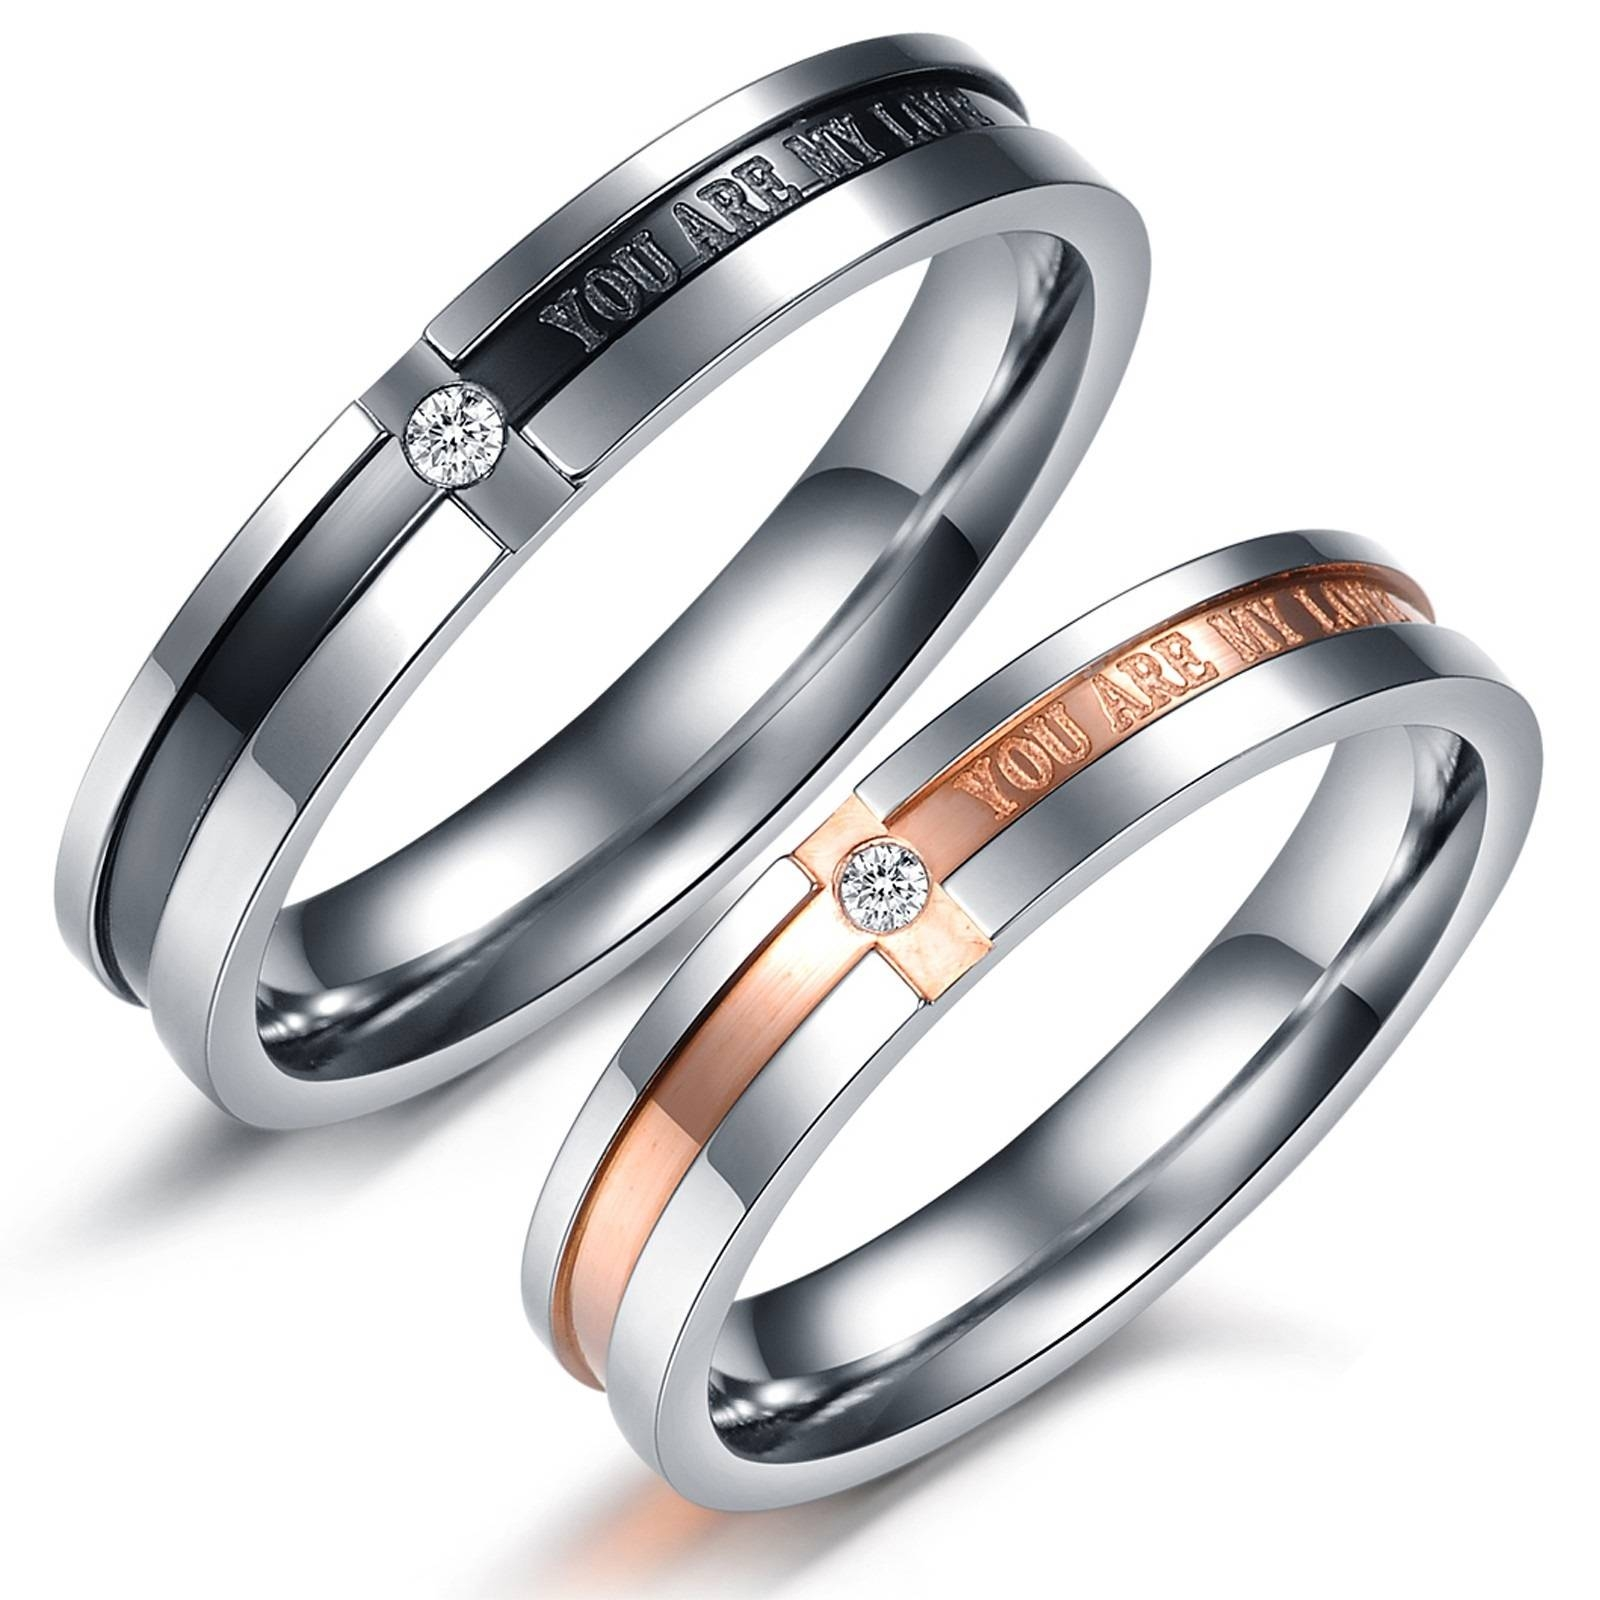 Wedding Rings : Disney Engagement Rings Alice Disney Wedding Rings Inside Tiffany Wedding Bands For Men (View 13 of 15)